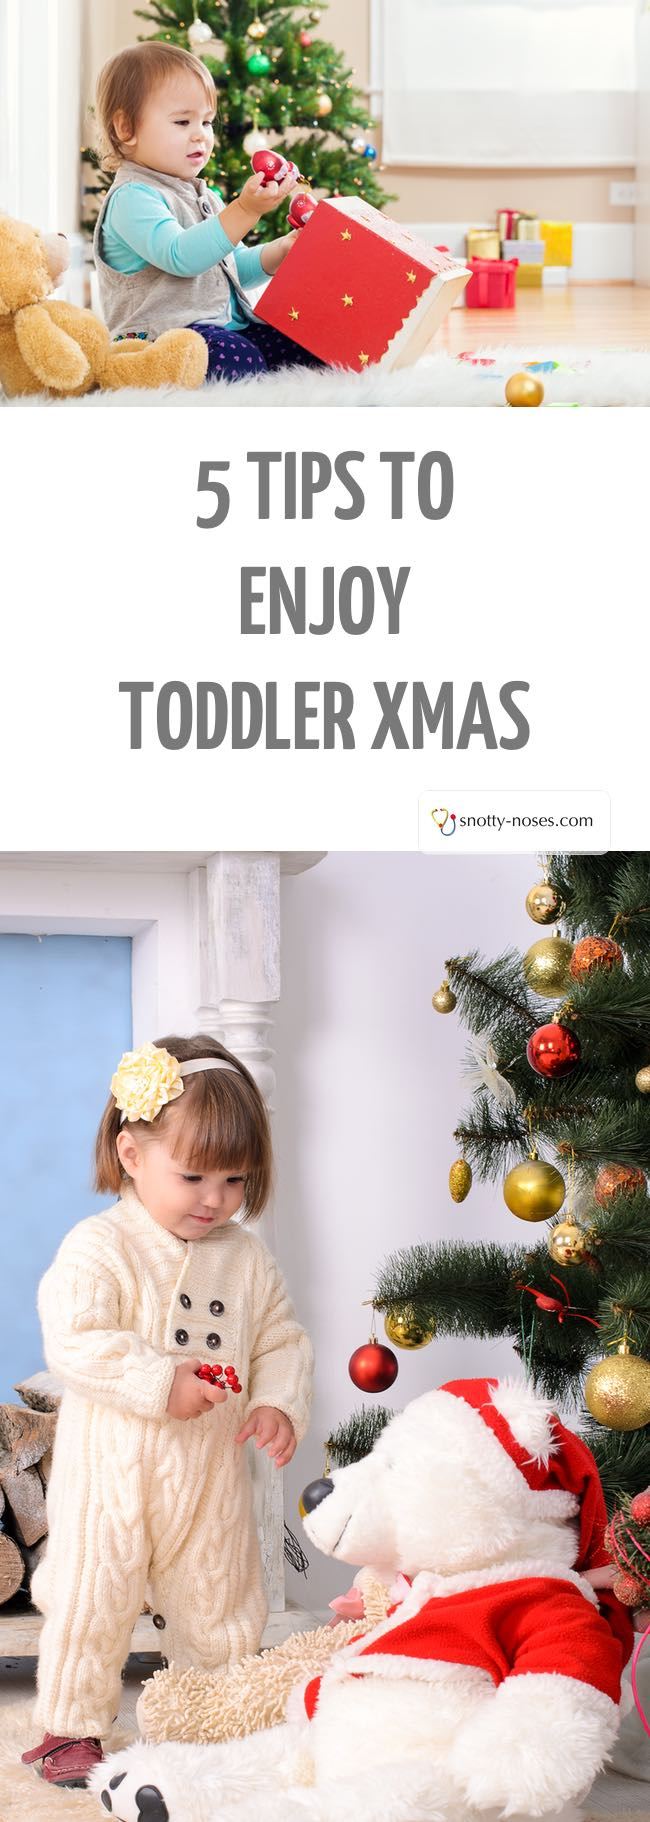 5 Tips to Enjoy Christmas With Your Toddler. Christmas is such an exciting time for toddlers but when routines go out the window, it can be really stressful. Some easy and simple strategies to help you stay on track and enjoy your toddler christmas